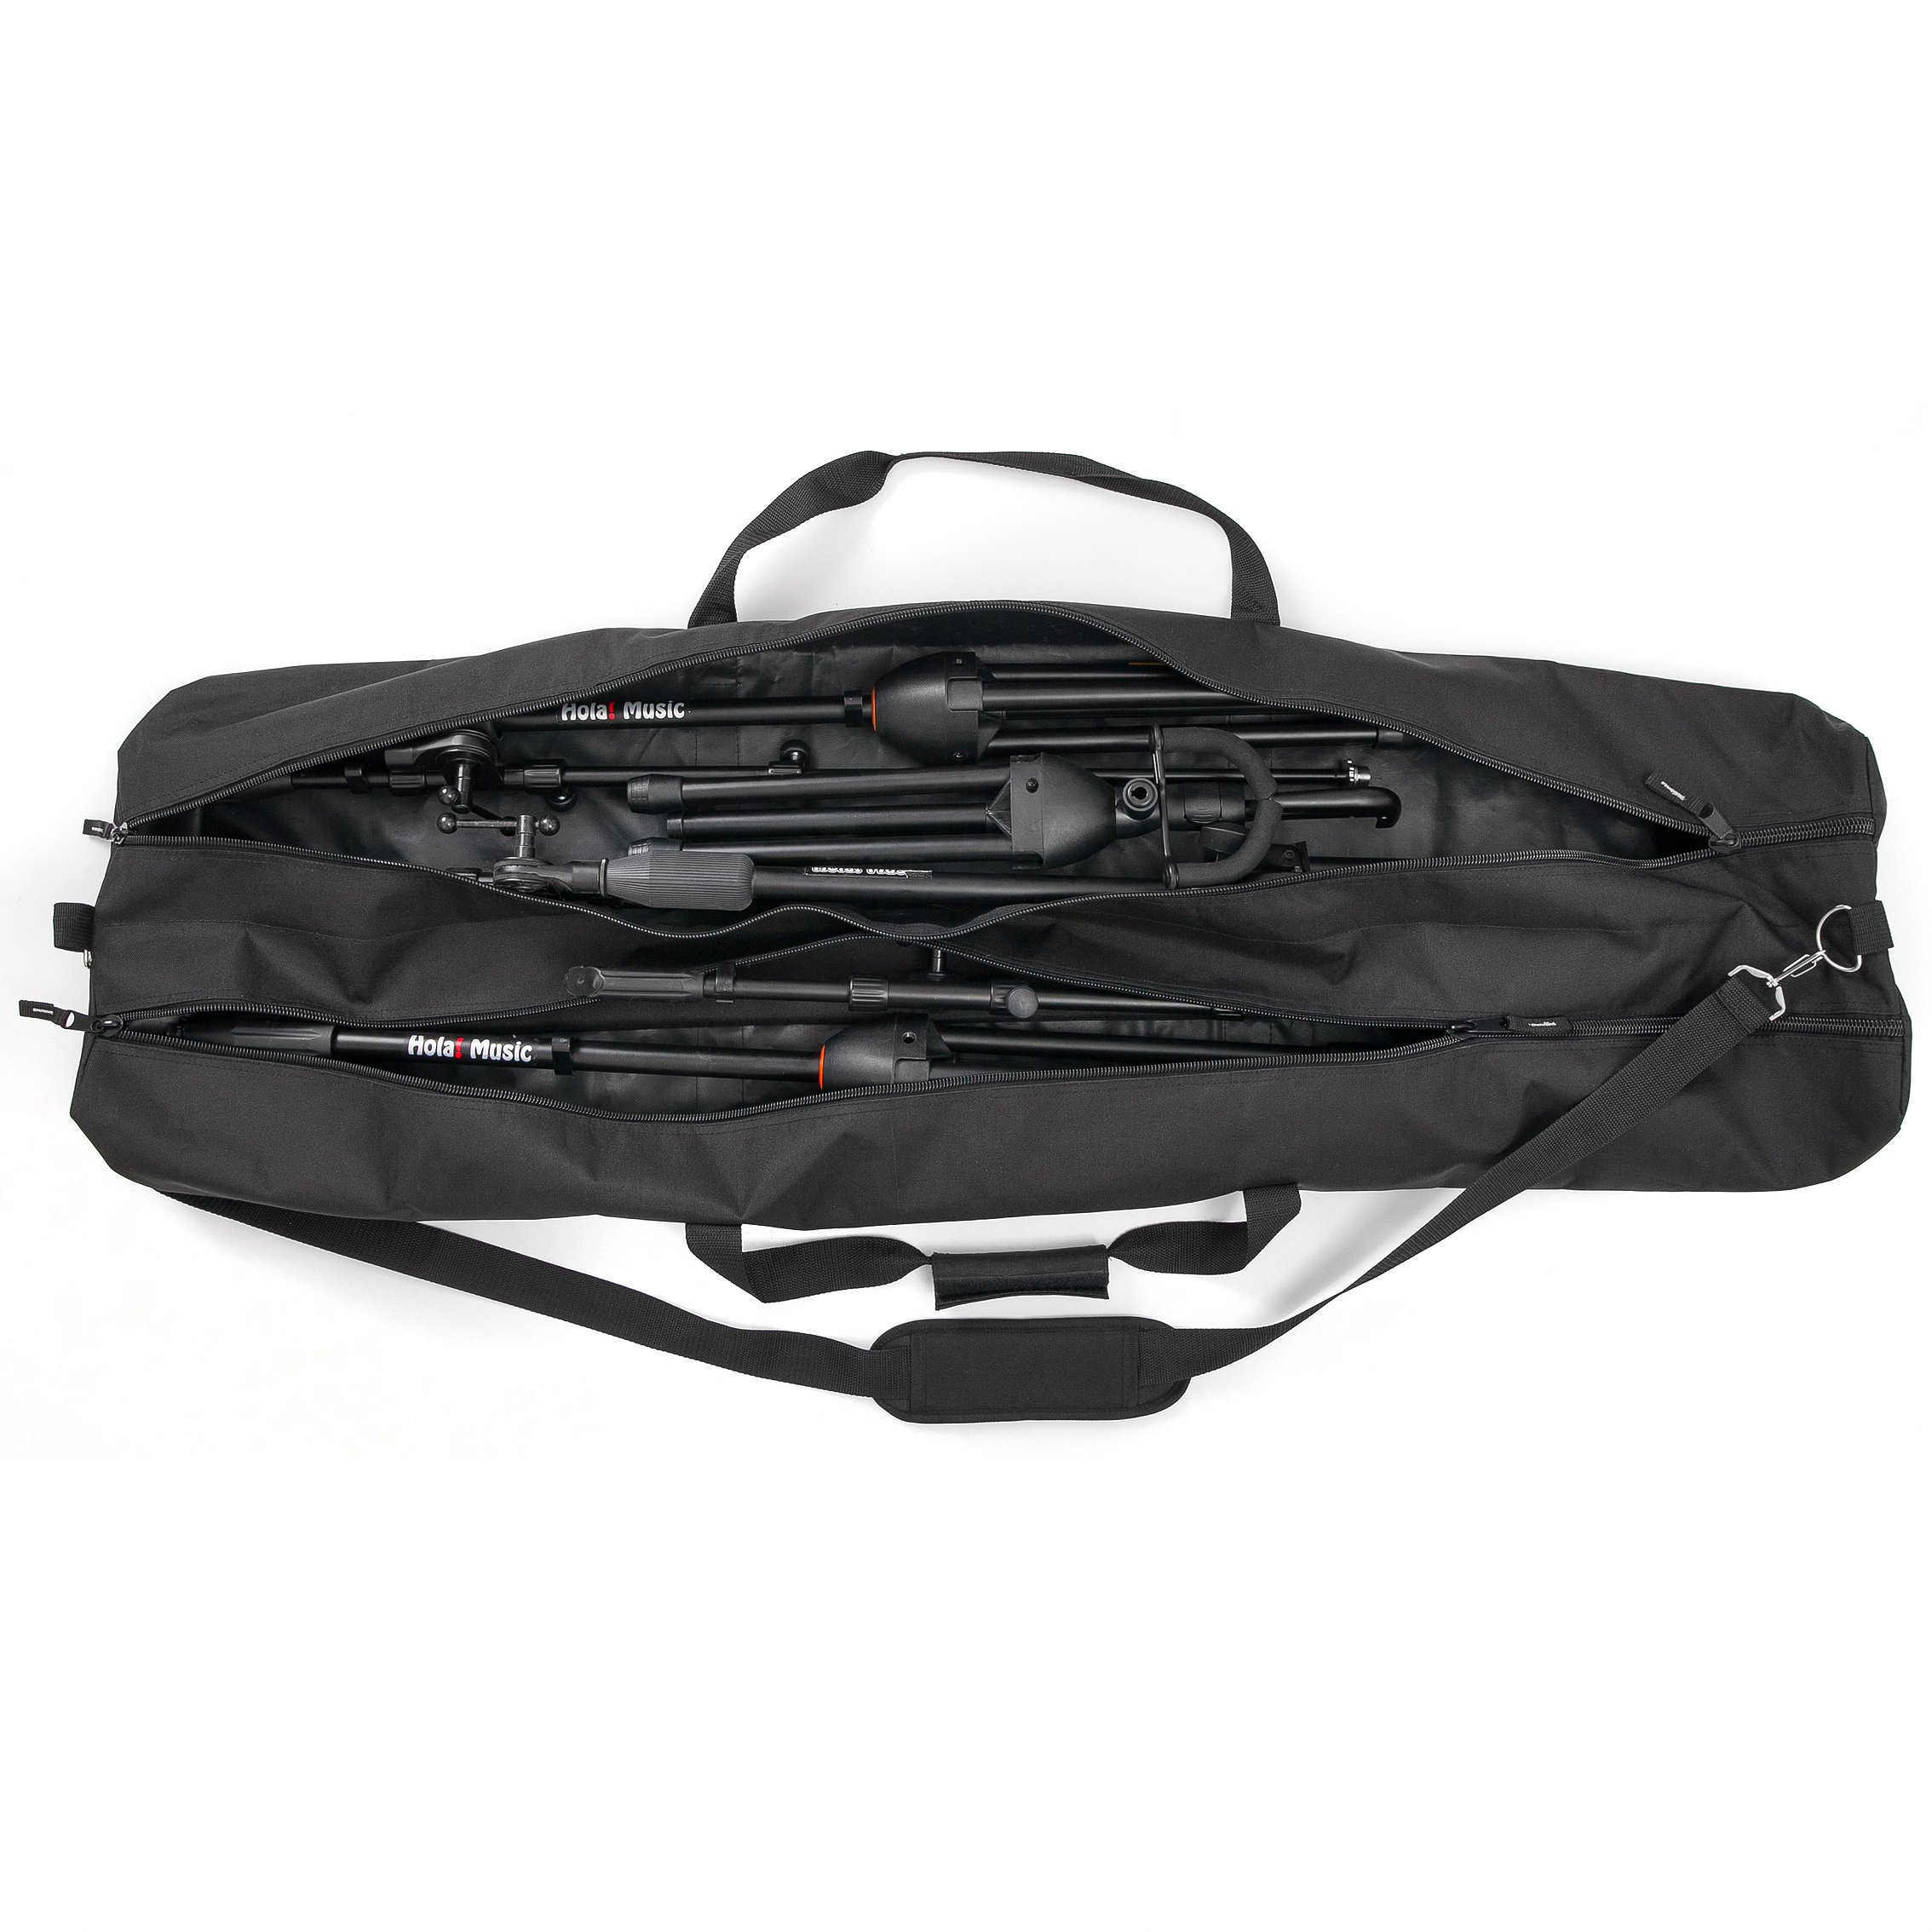 Speaker and Microphone Stand Gig Bag by Hola! Music, Dual Compartment, 50 Inch Long with Shoulder Strap by Hola! Music